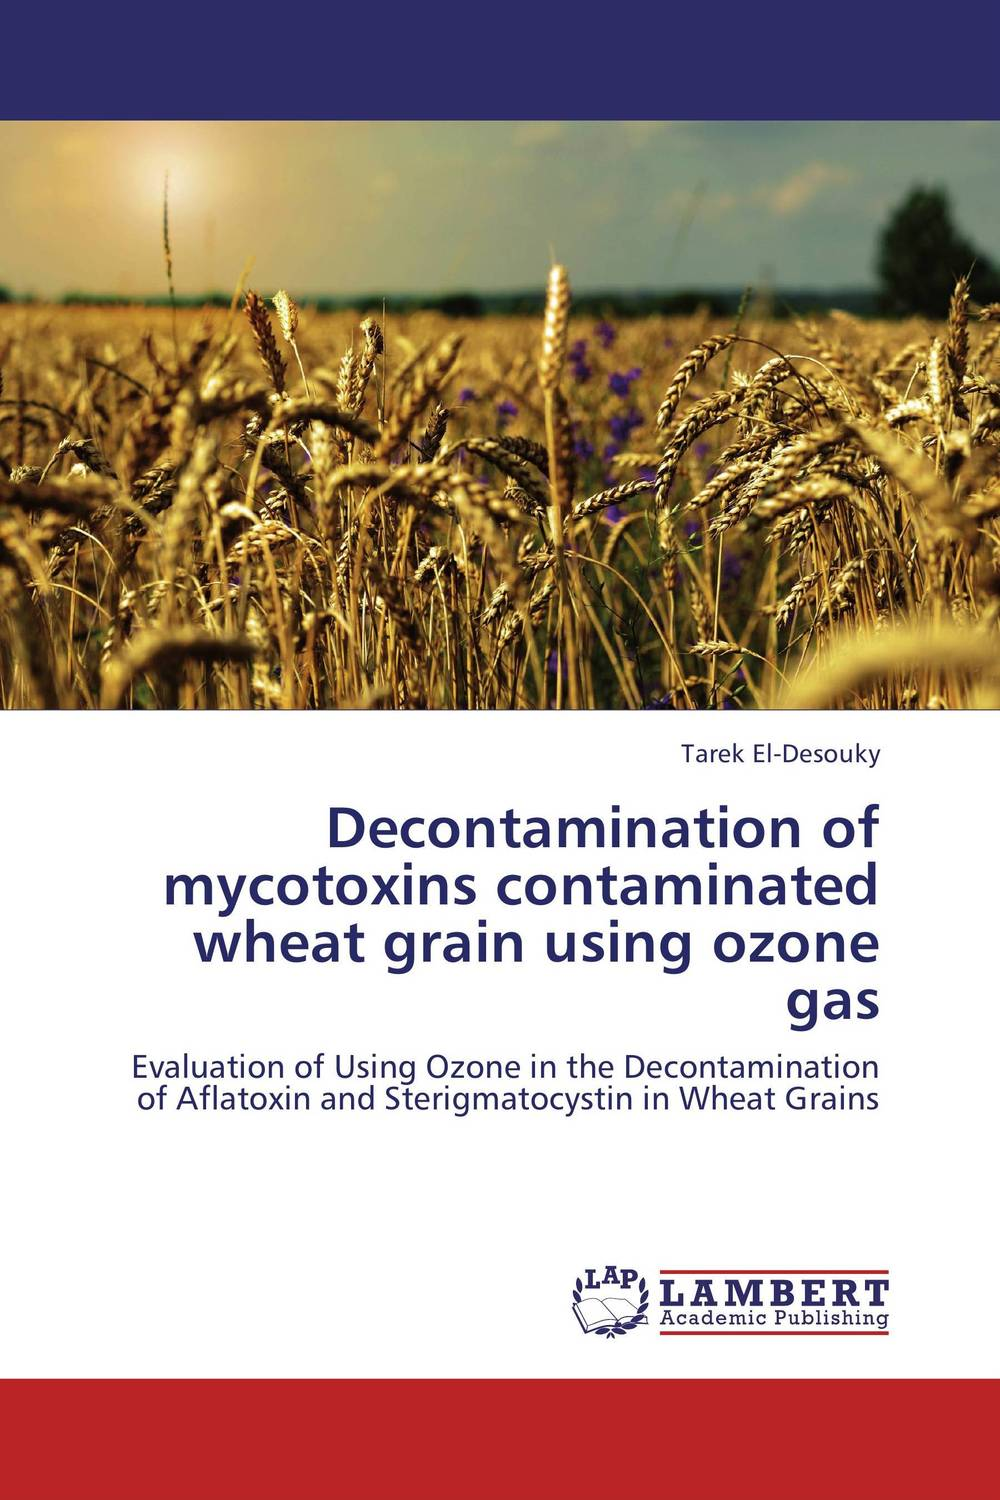 Decontamination of mycotoxins contaminated wheat grain using ozone gas evaluation of lucern as a predator source for wheat aphids